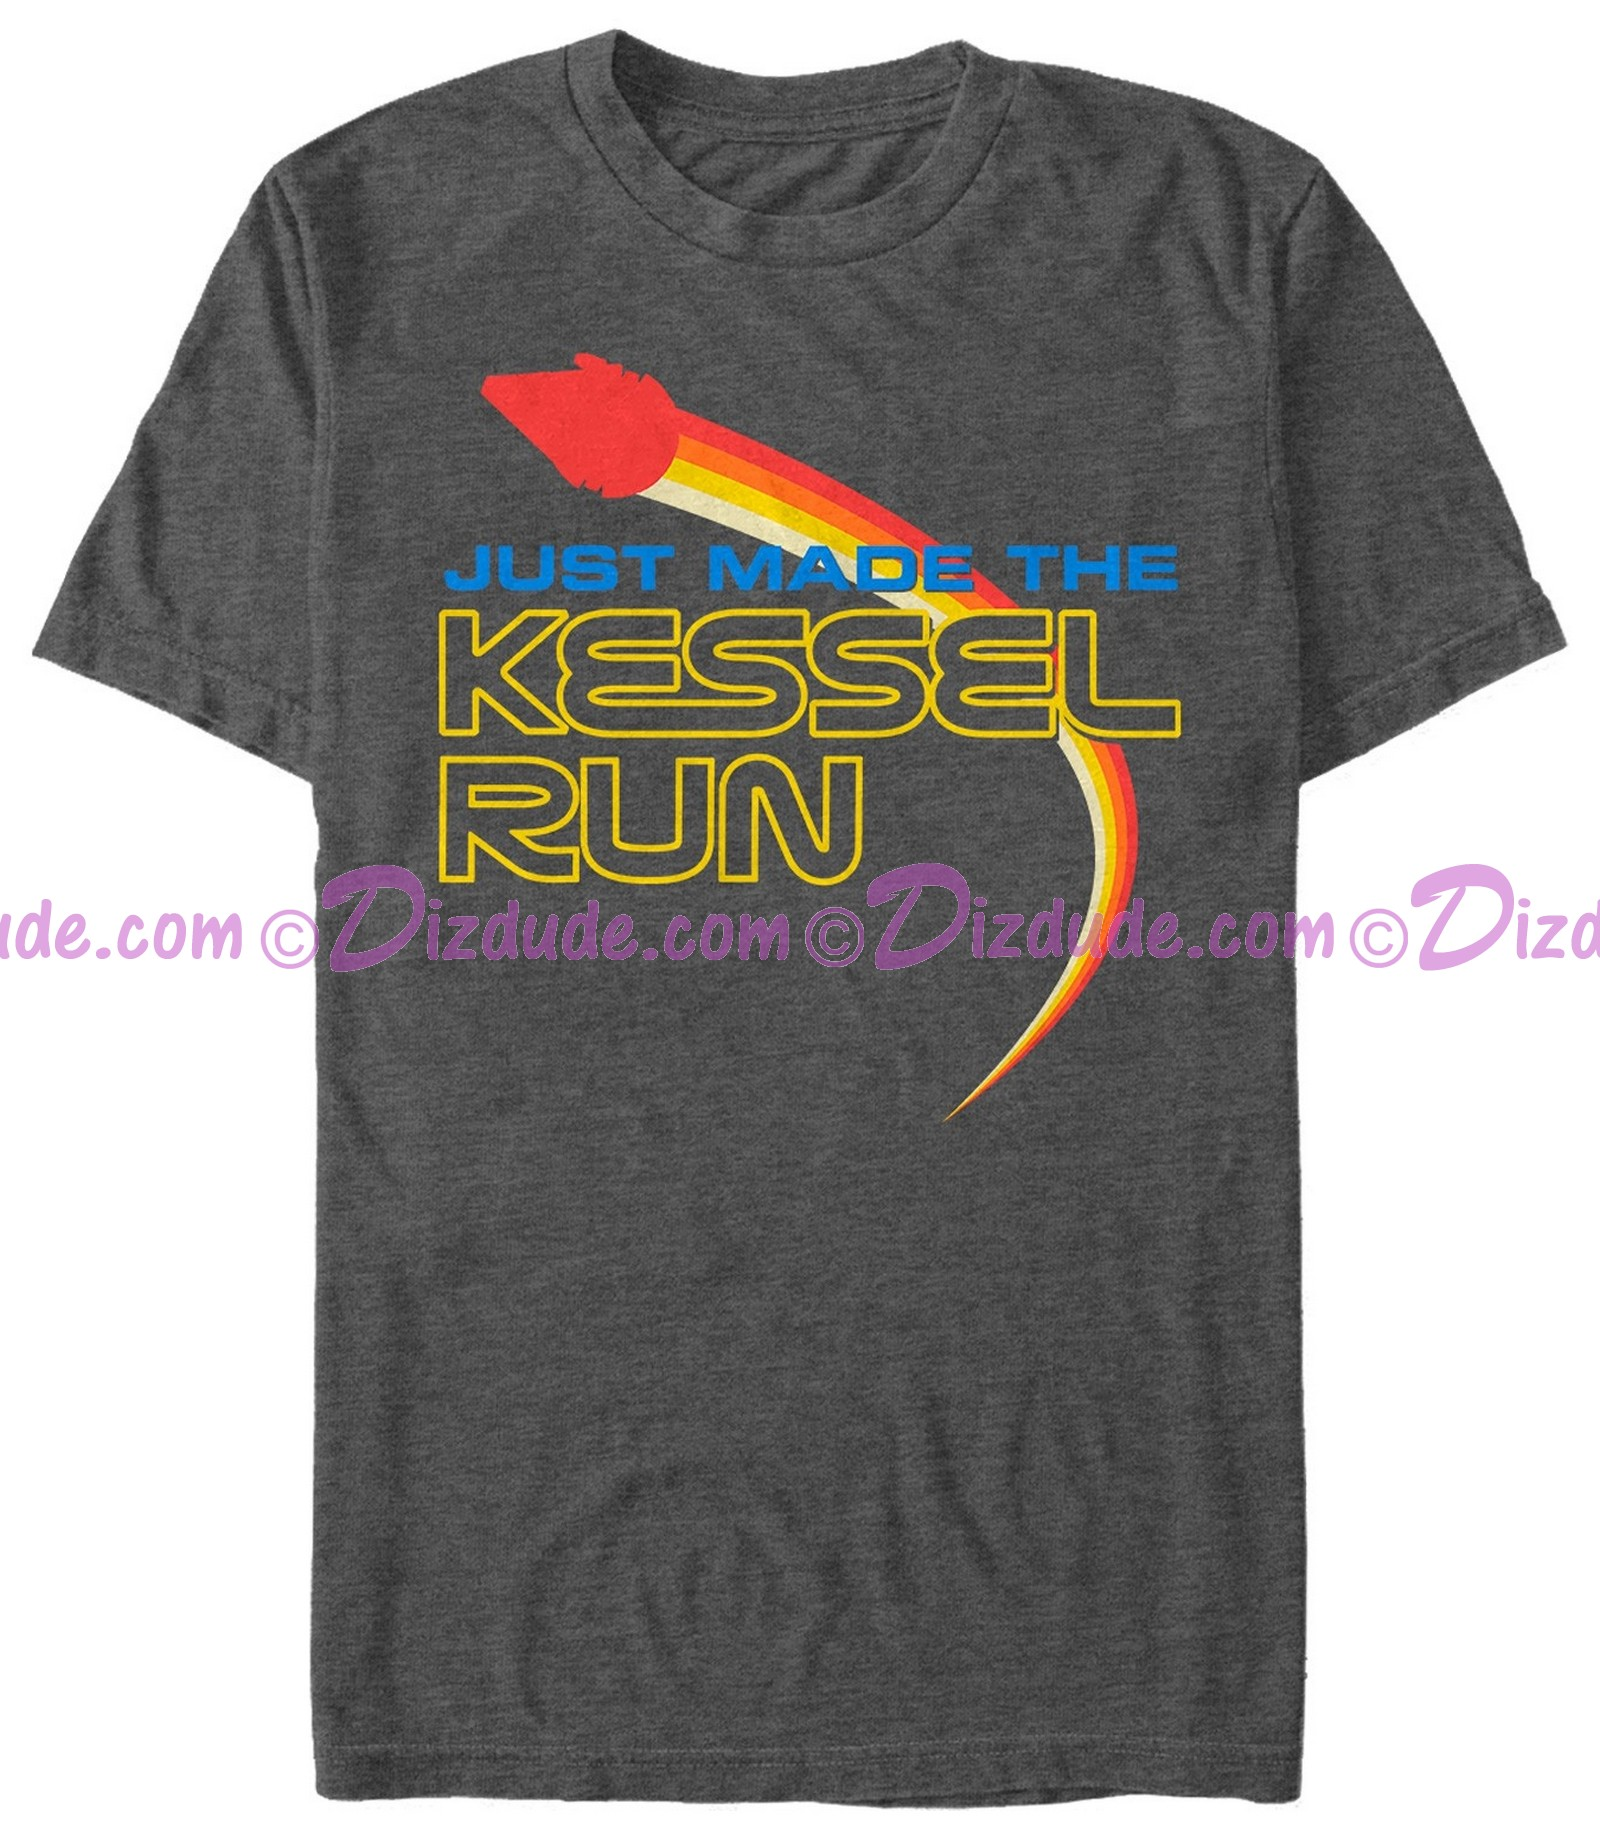 SOLO A Star Wars Story Just Made the Kessel Run Adult T-Shirt (Tshirt, T shirt or Tee)  © Dizdude.com